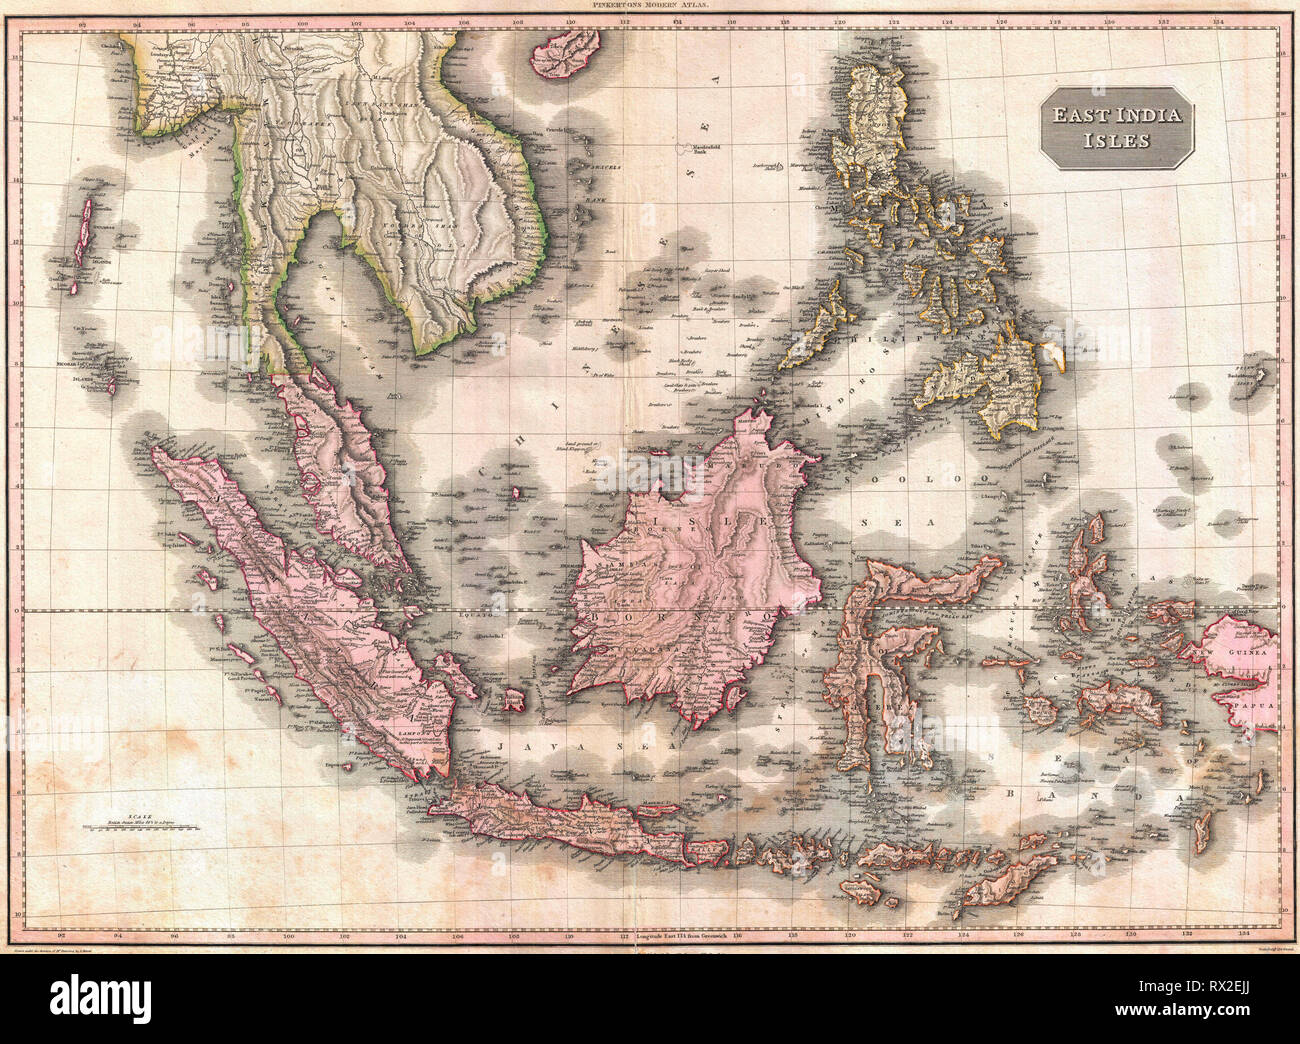 Pinkerton's extraordinary 1818 map of the East Indies. Covers from Burma south to Java and from the Andaman Islands eastward as far as the Philippines and New Guinea. Includes the entire Malay Peninsula, much of Southeast Asia (Thailand, Cambodia, Vietnam), Sumatra, Java, Borneo and the Philippines. Stock Photo